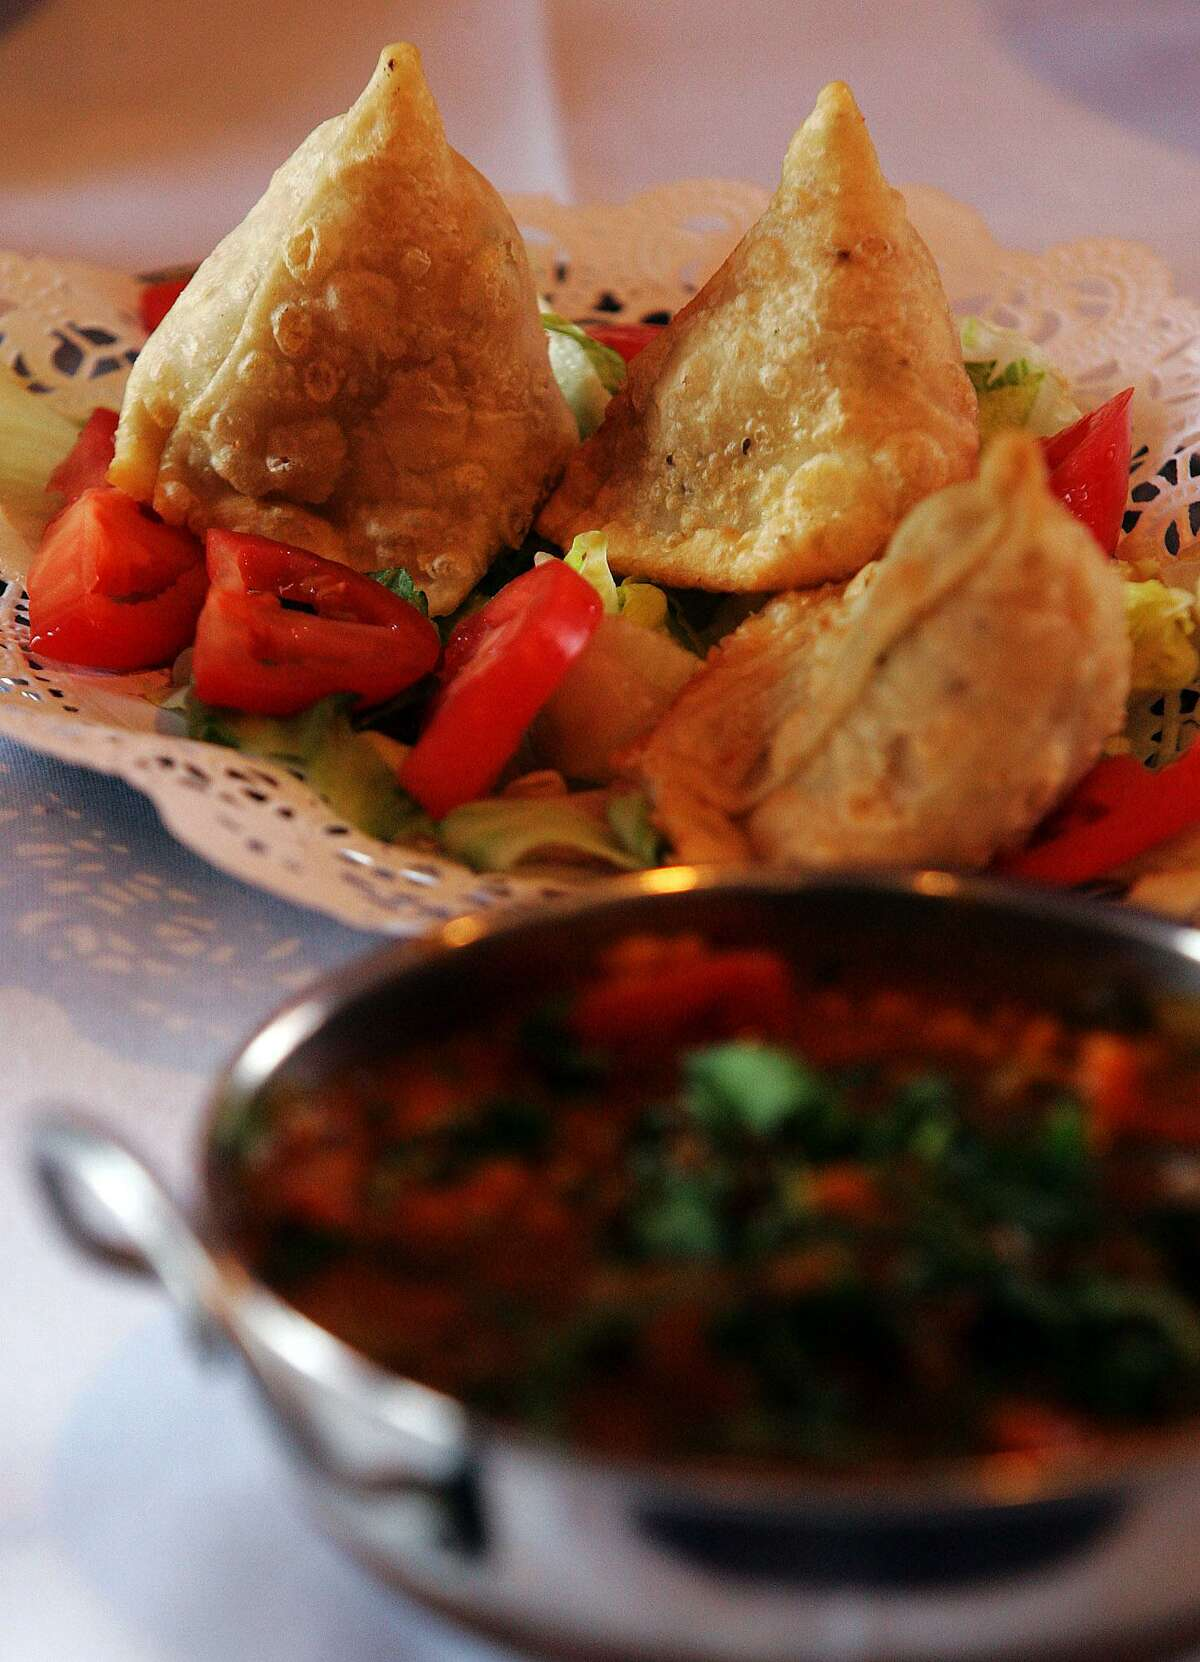 India Oven serves up vegetable samosas (top) along with Daal meat.